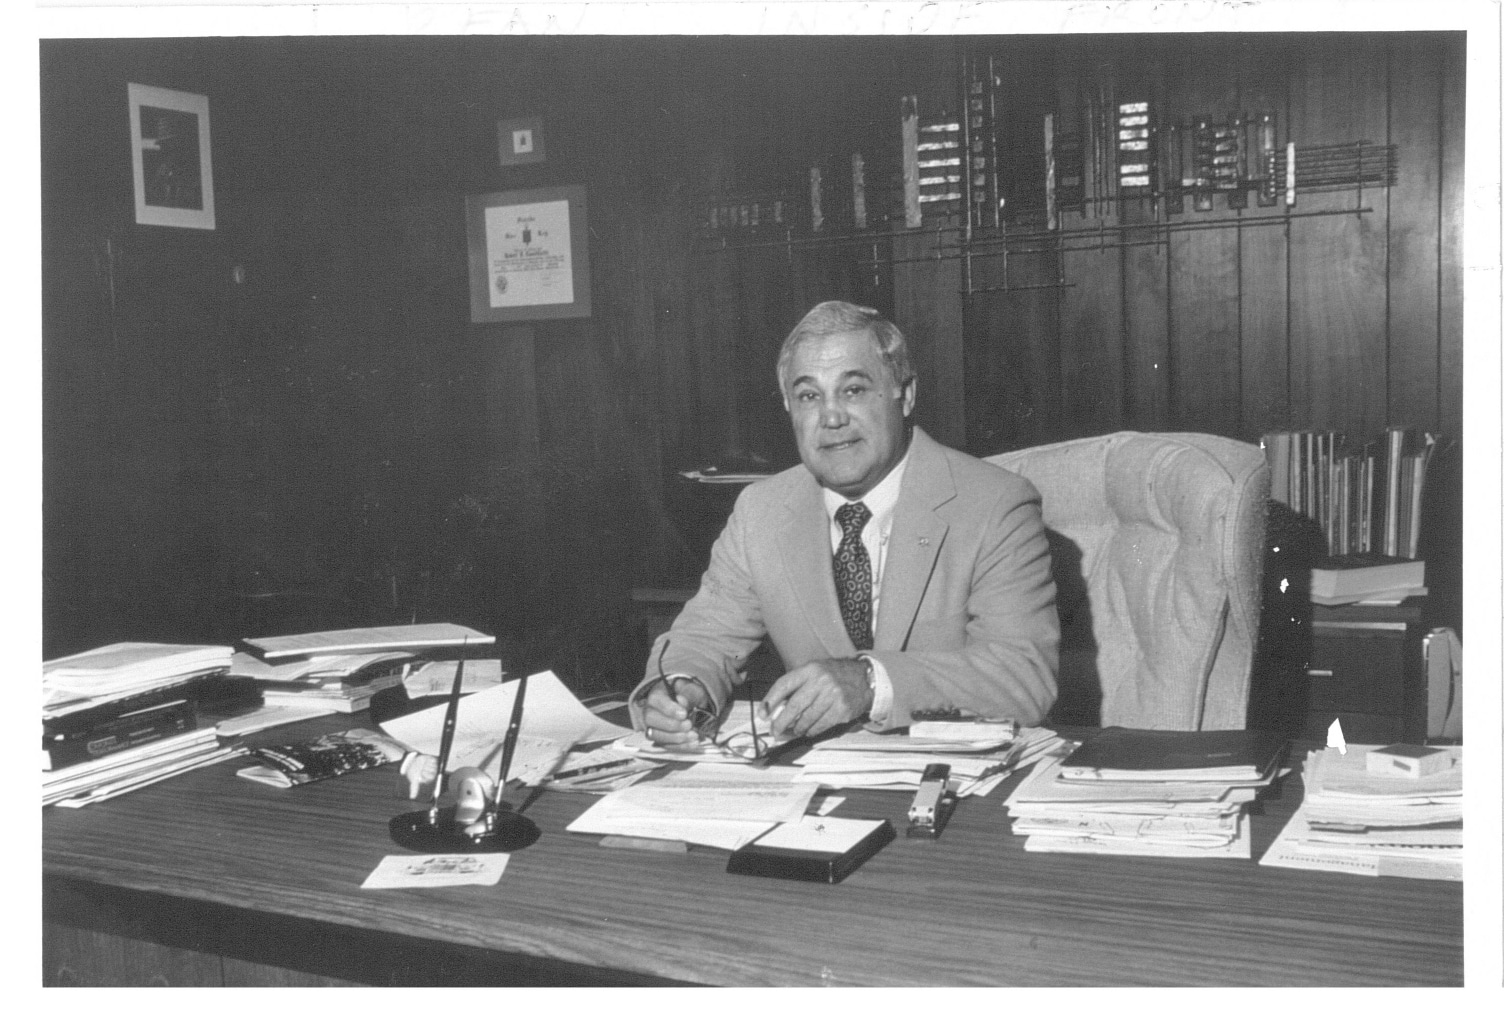 Robert Lanzillotti sits at his desk while serving as Dean of the Warrington College of Business.